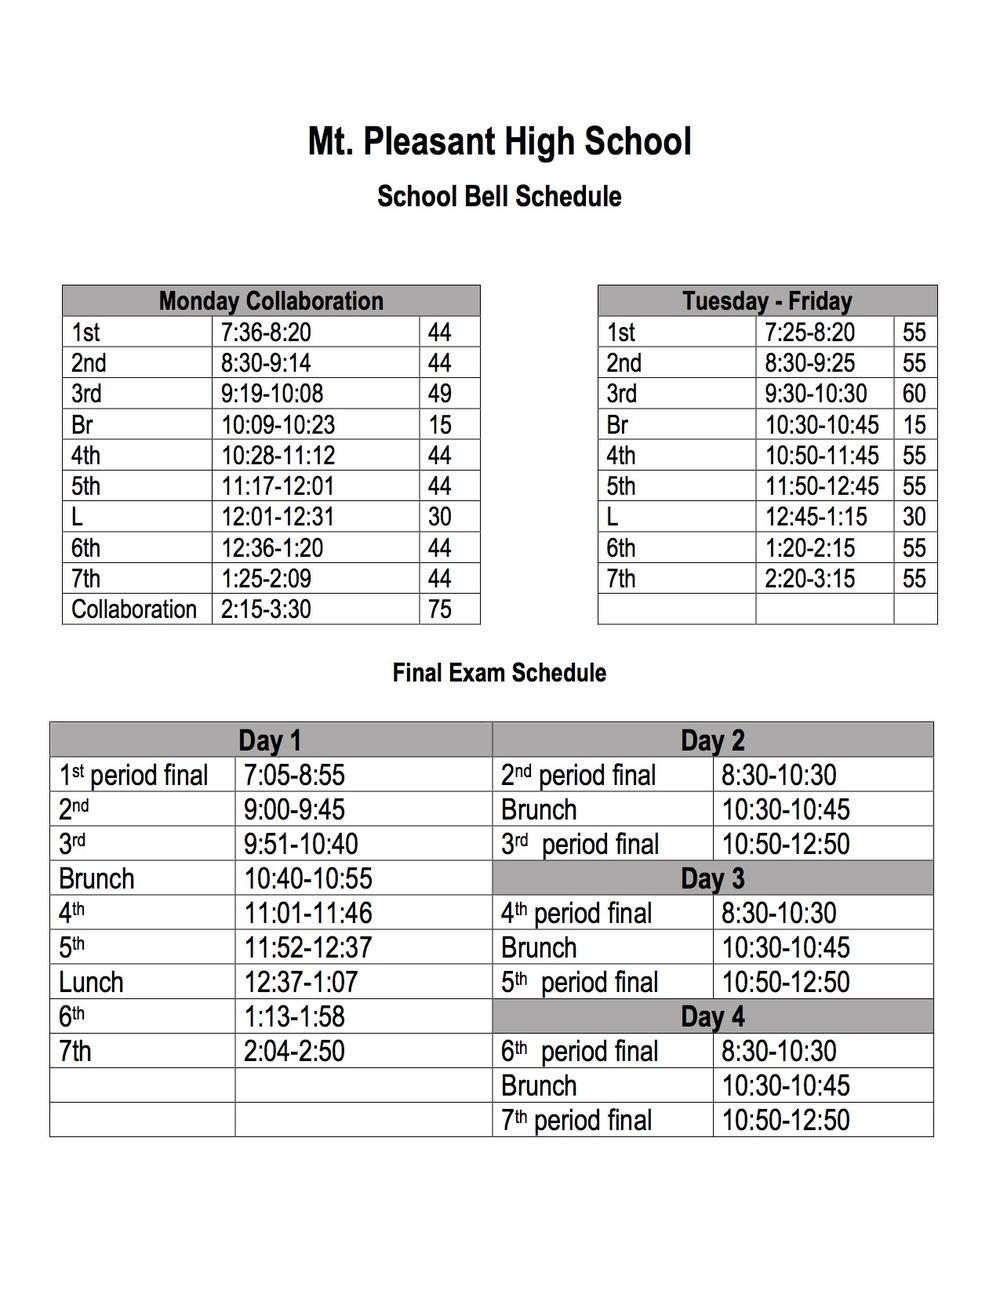 Mp 2016-2017 bell schedule copy.jpg